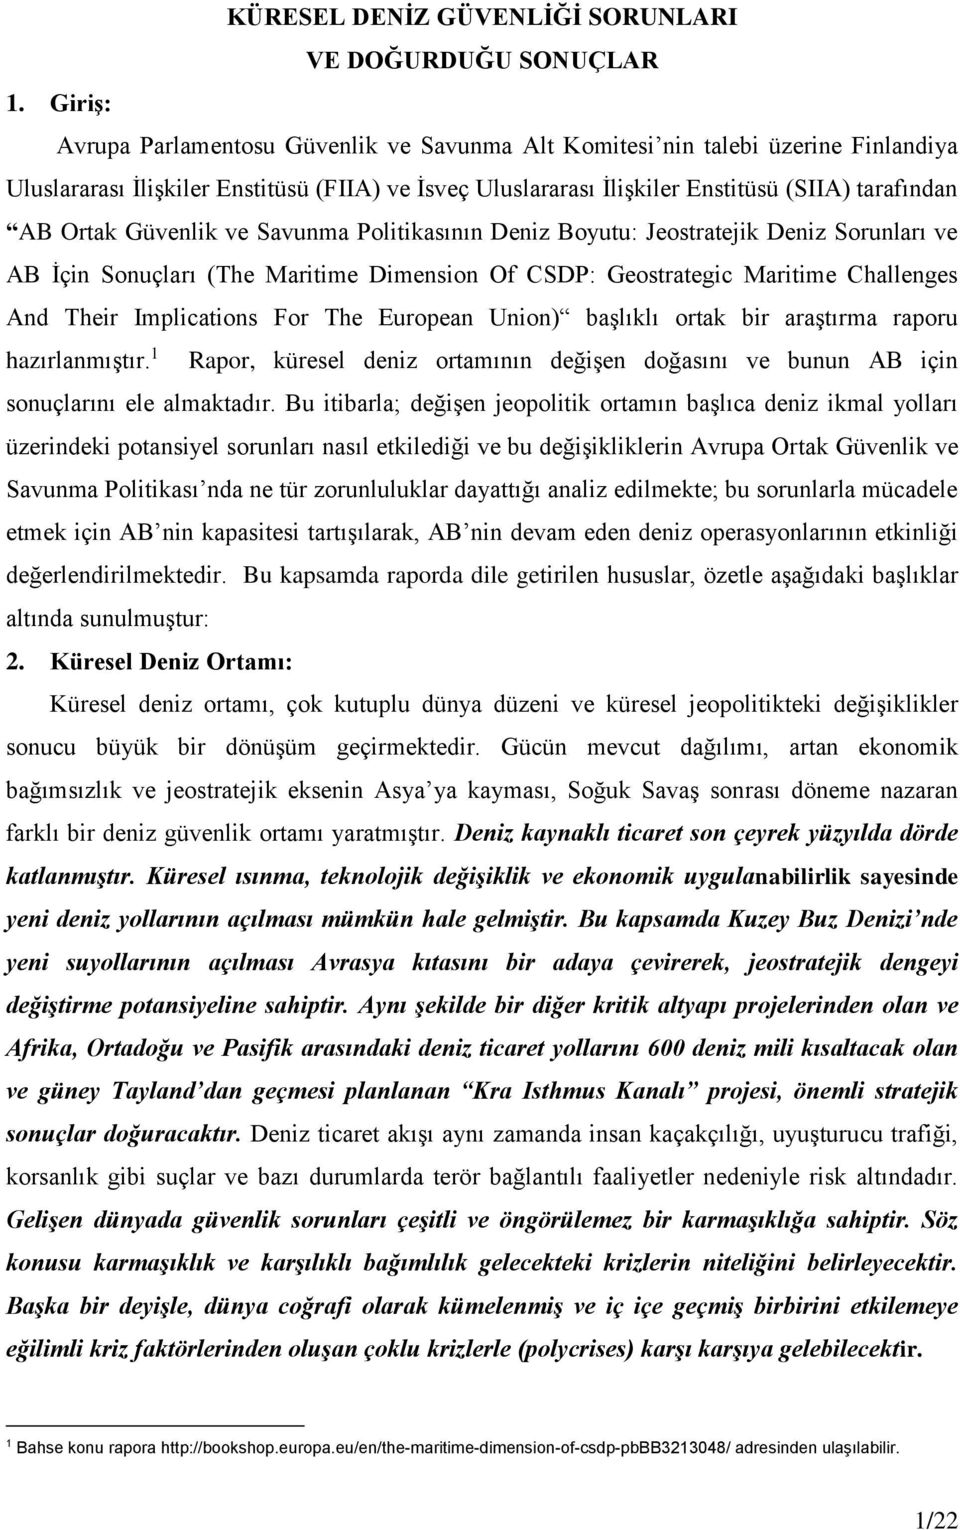 Güvenlik ve Savunma Politikasının Deniz Boyutu: Jeostratejik Deniz Sorunları ve AB İçin Sonuçları (The Maritime Dimension Of CSDP: Geostrategic Maritime Challenges And Their Implications For The